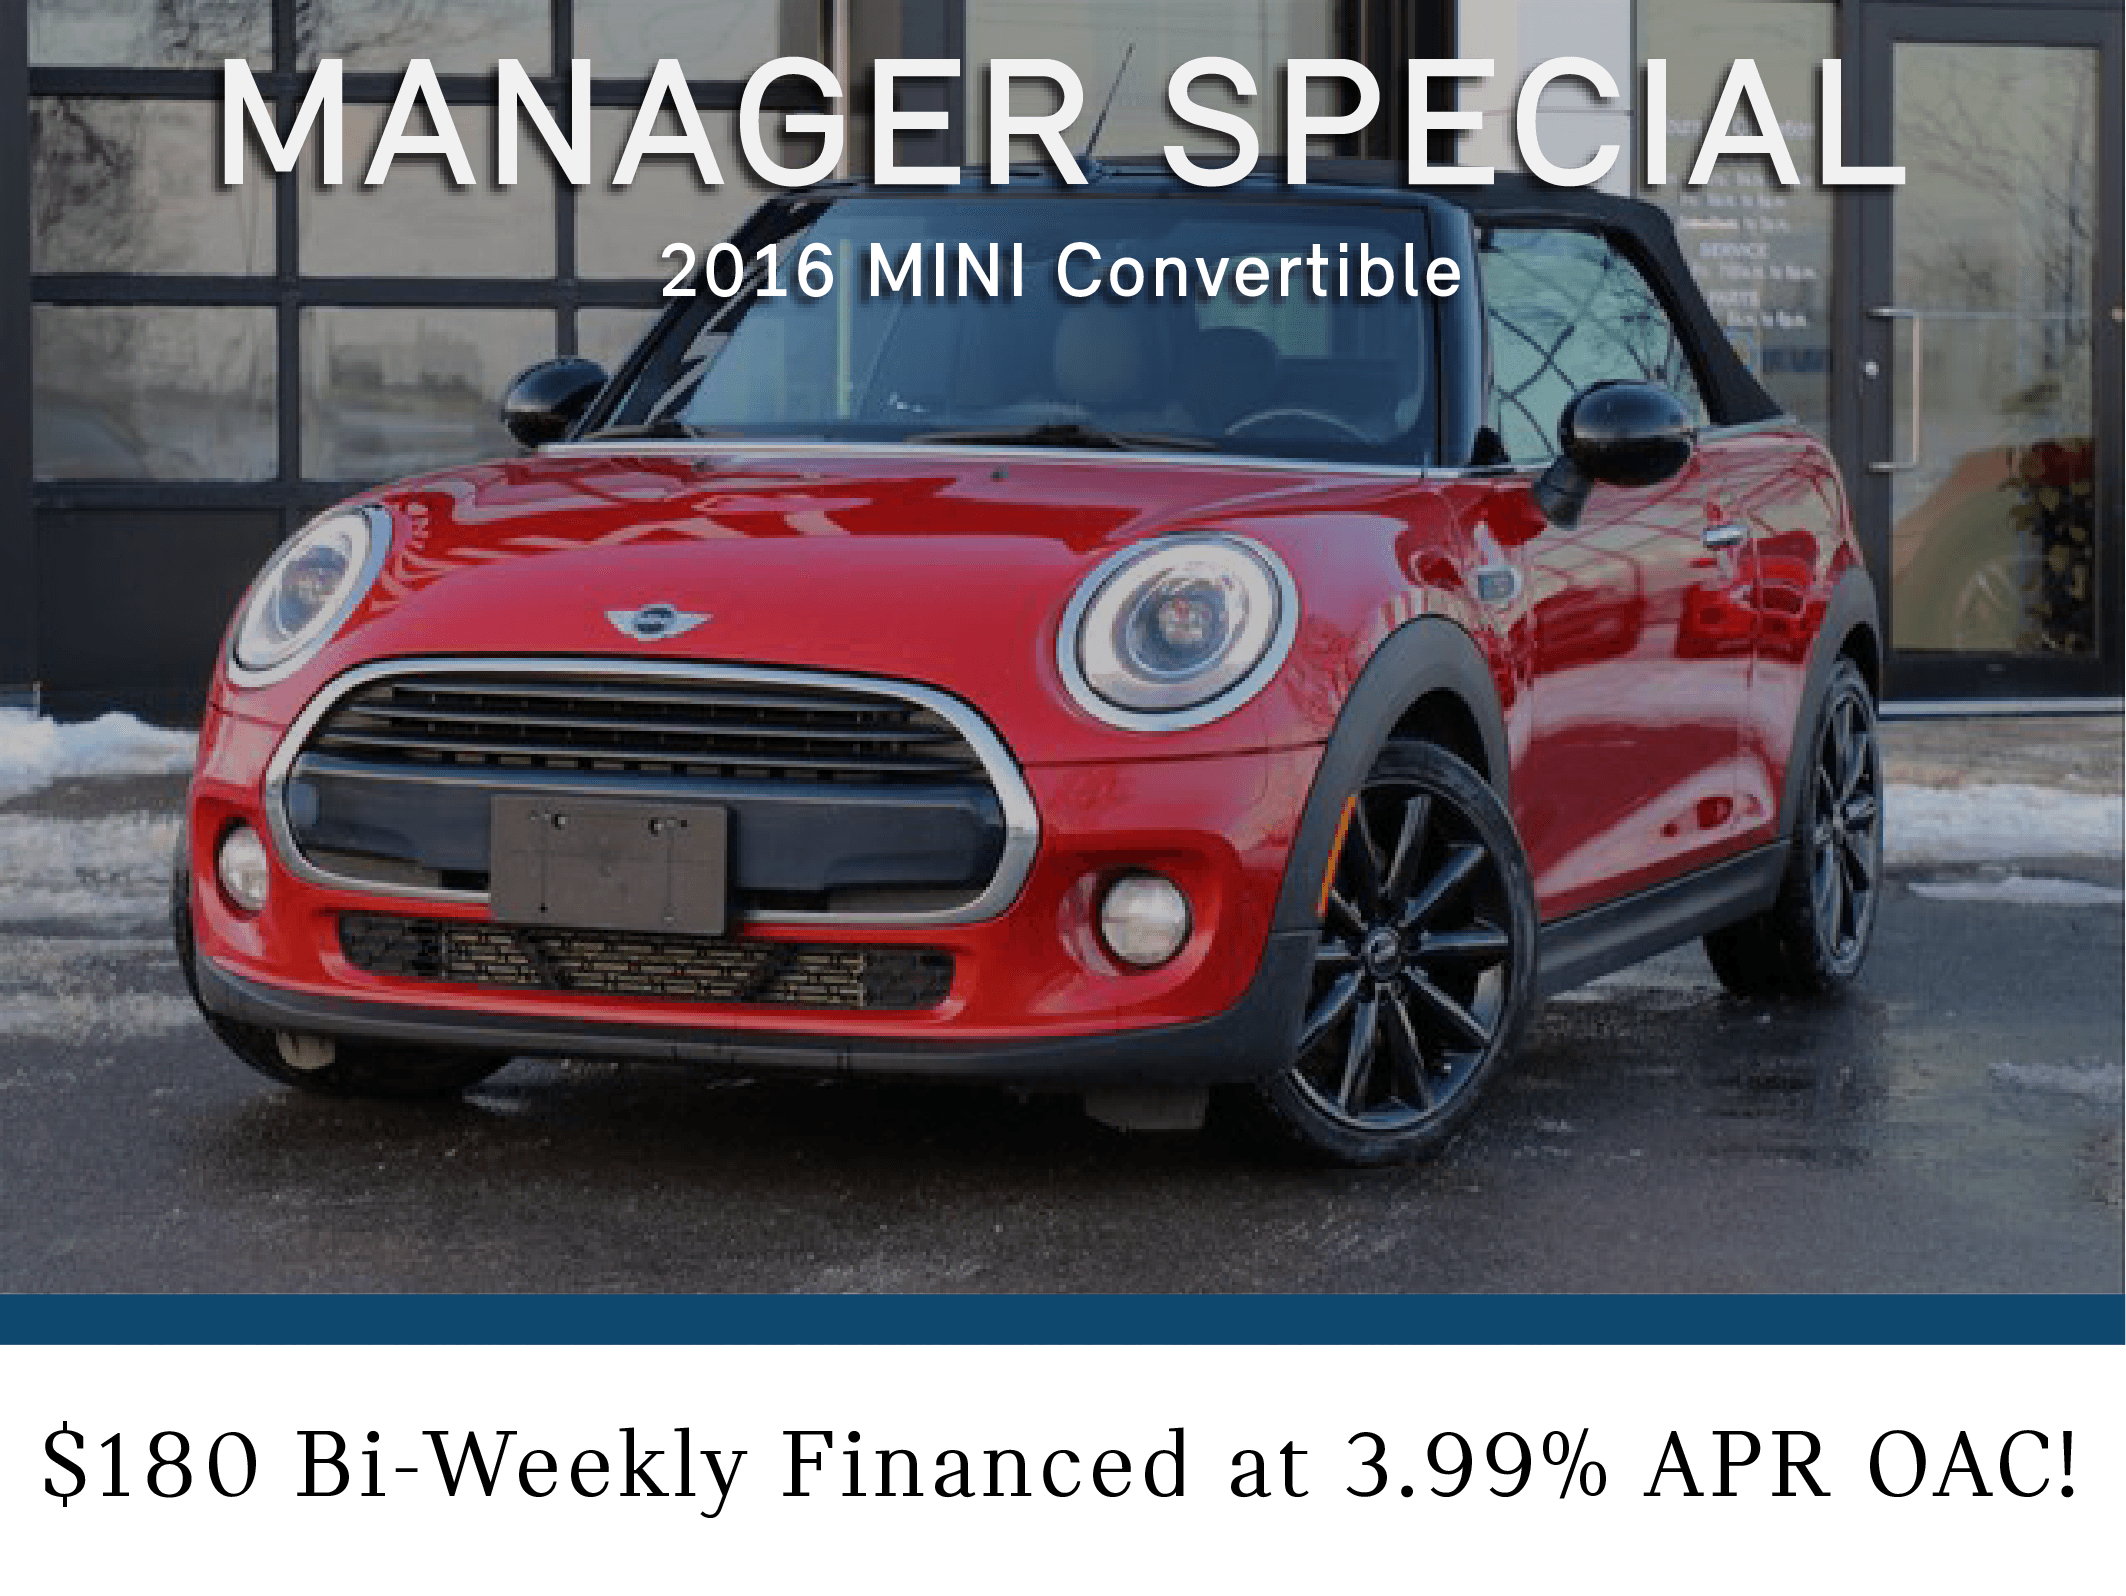 Manager Special- 2016 Mini Convertible